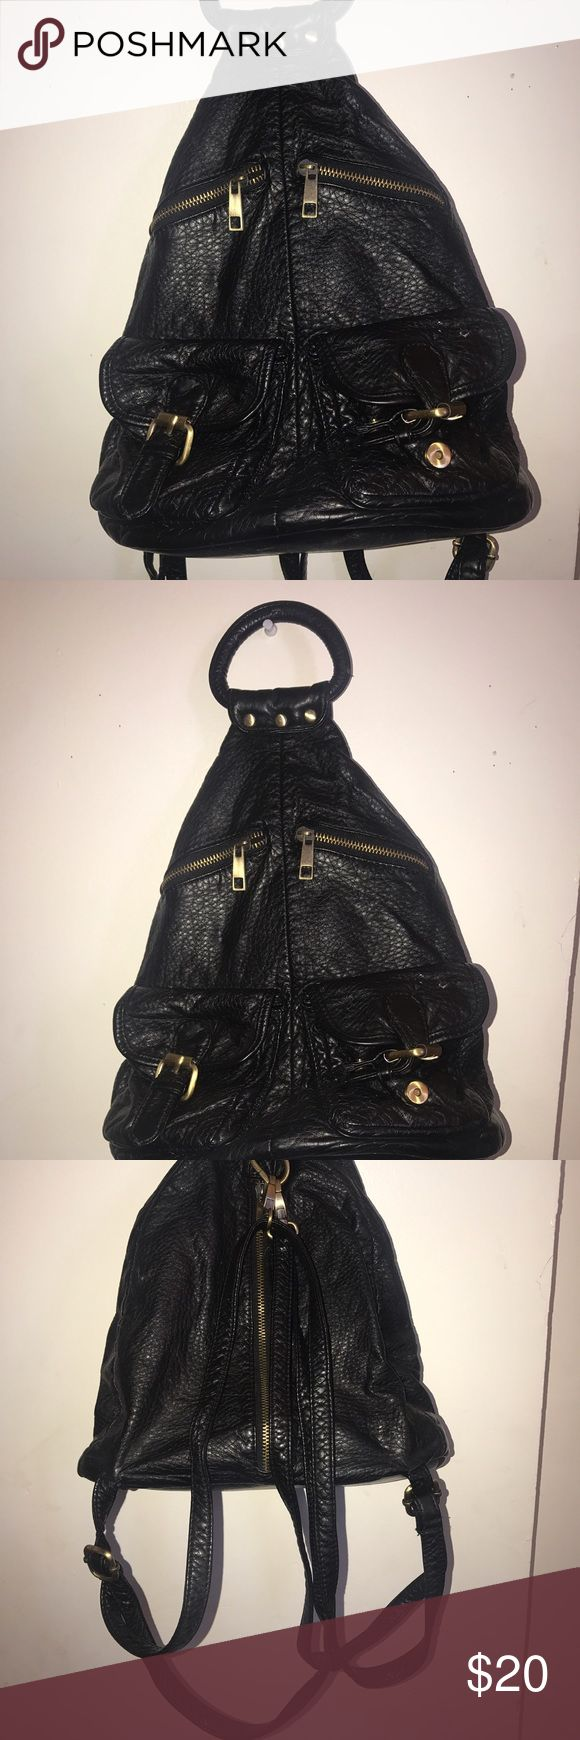 Backpack/purse Black vegan leather backpack, small. Great for festivals and concerts Bags Backpacks